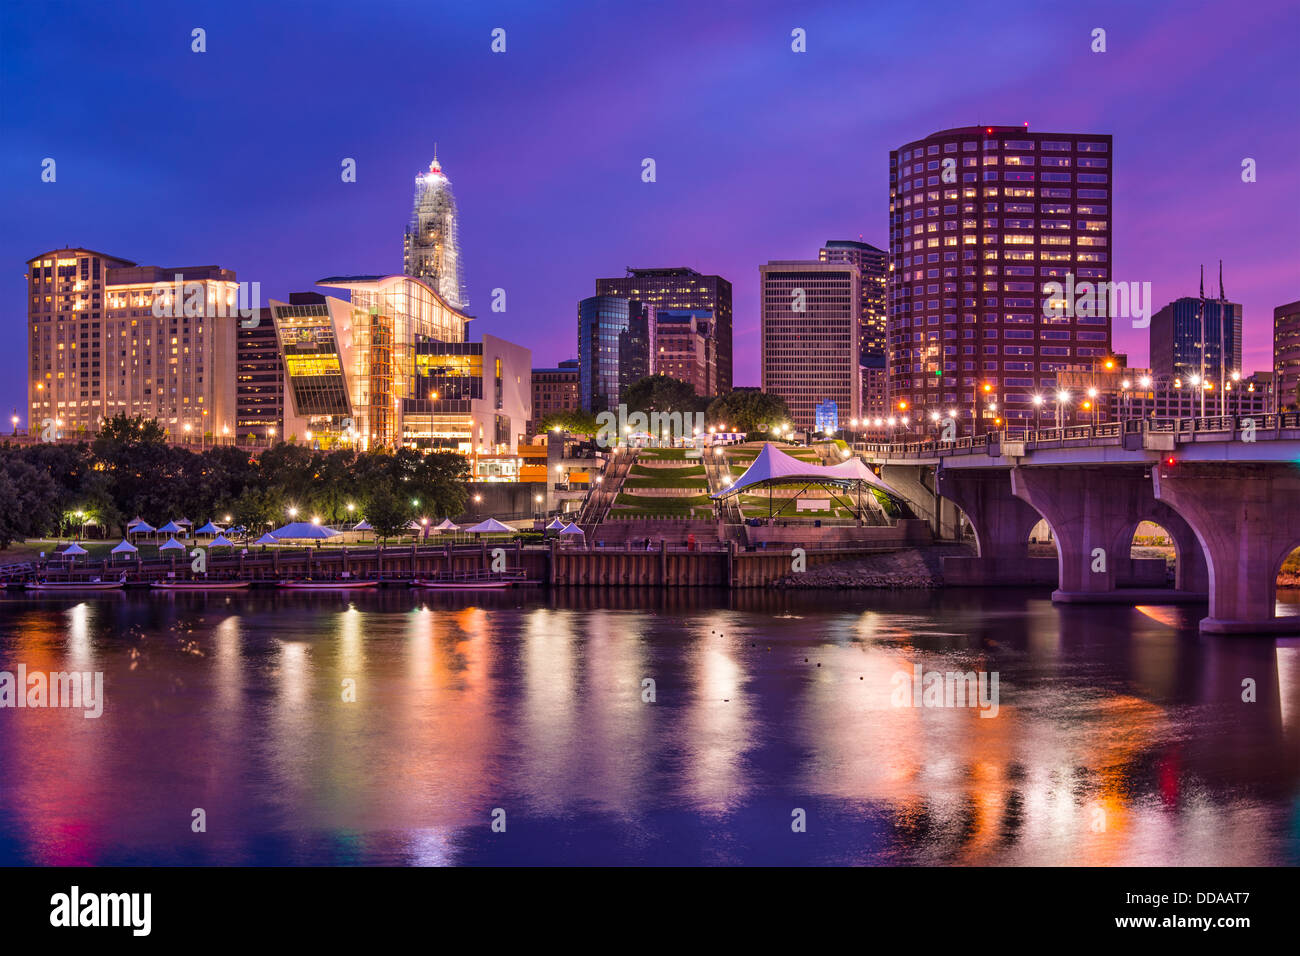 The skyline of downtown Hartford, Connecticut at dusk from across the Connecticut River. - Stock Image